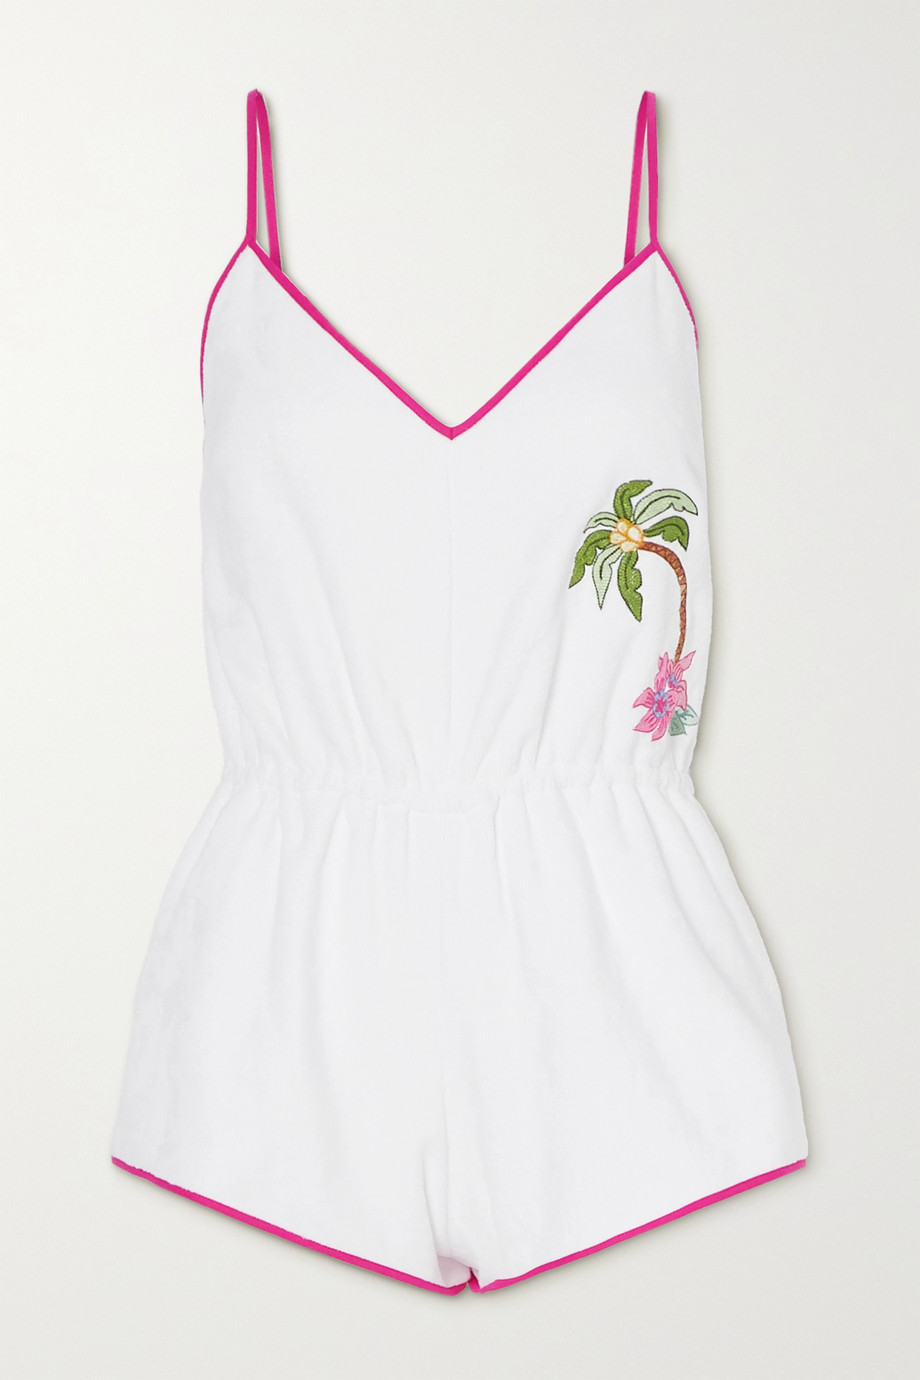 Loretta Caponi Anita embroidered cotton-terry playsuit